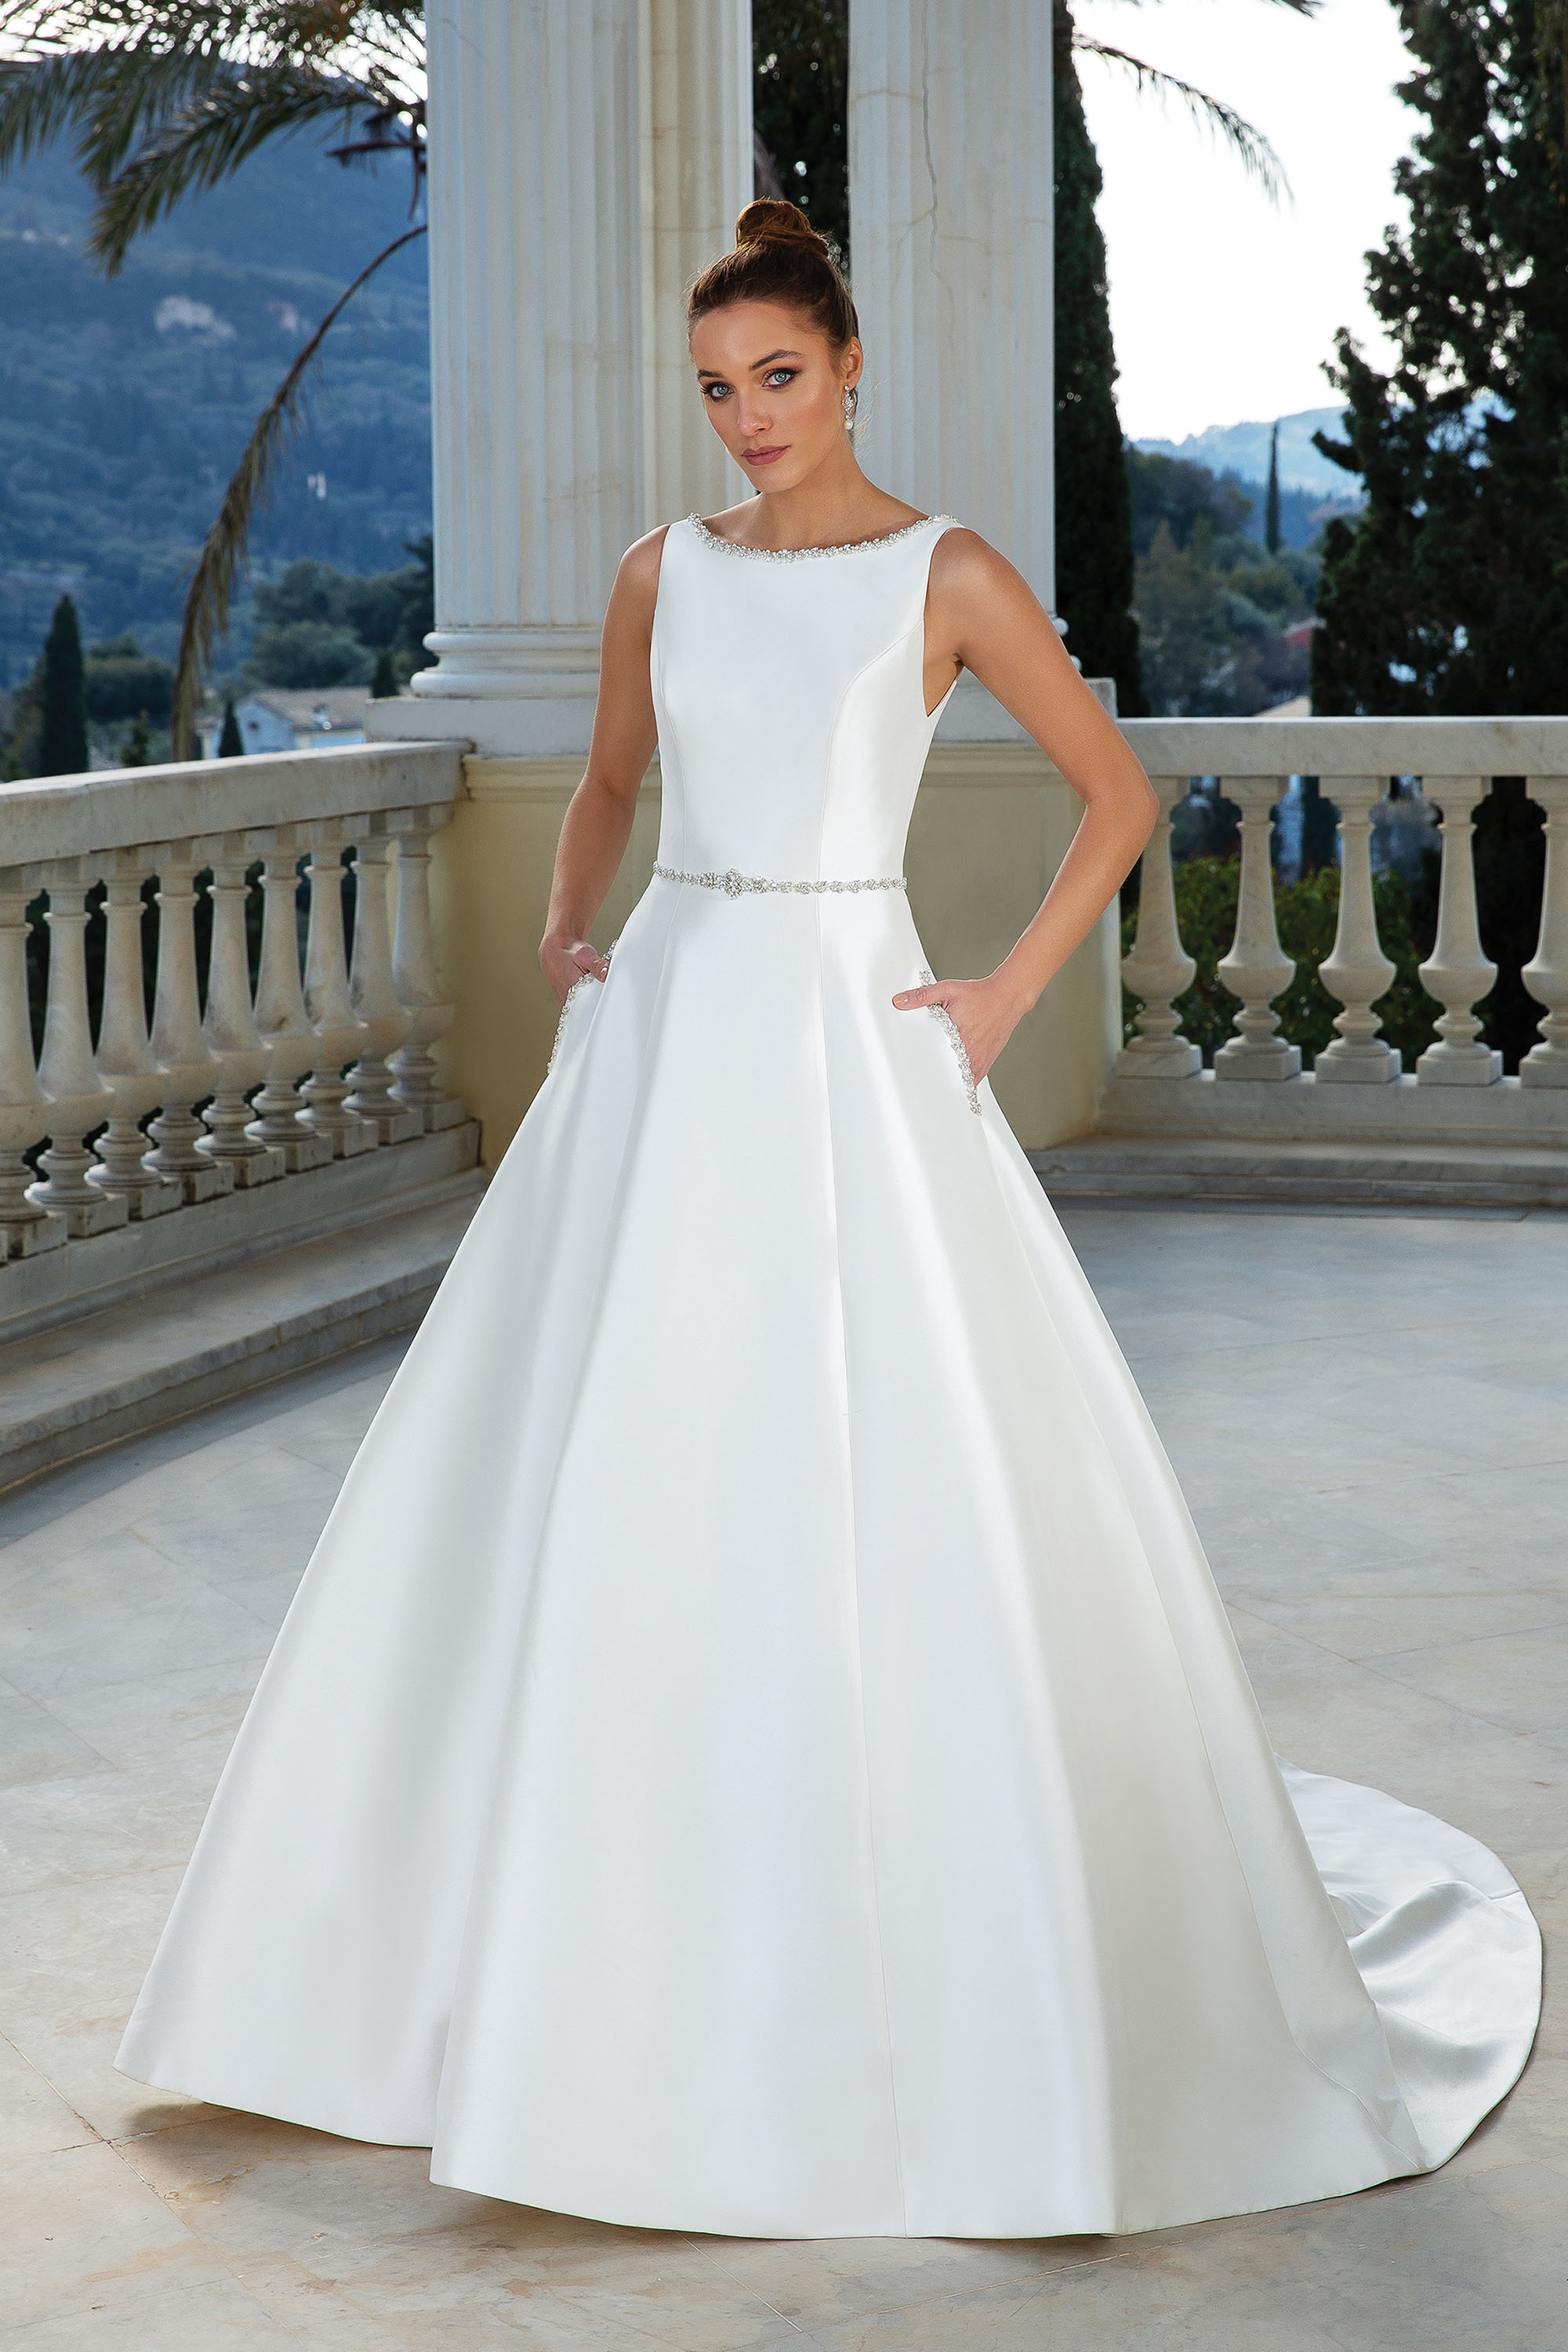 Wedding dress with sleeves and high neckline